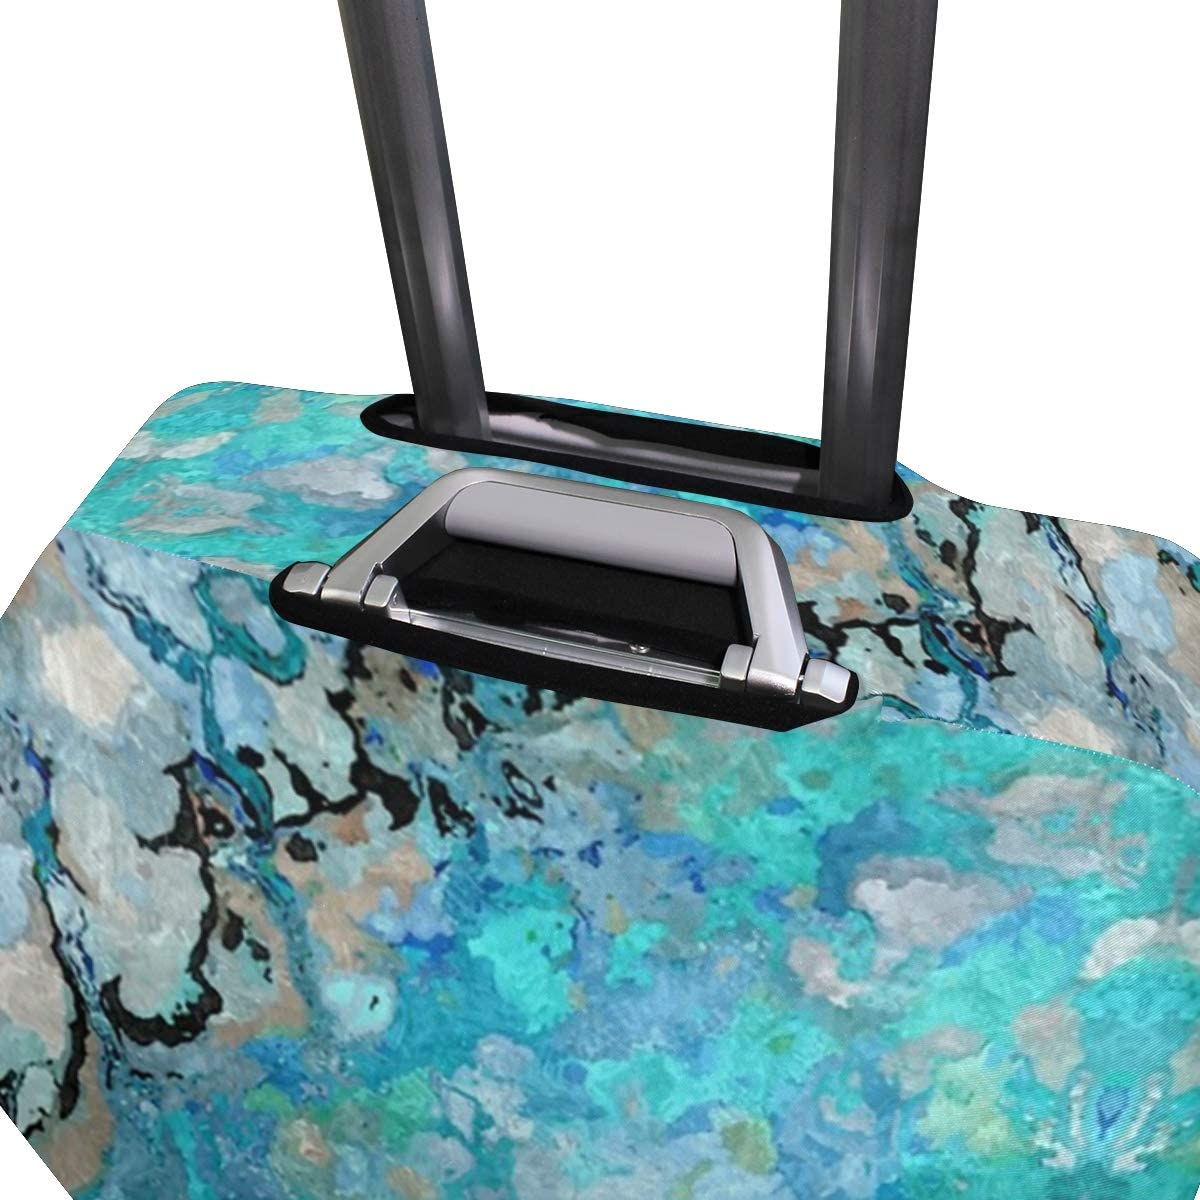 Marble Art Blue Abstract Traveler Lightweight Rotating Luggage Cover Can Carry With You Can Expand Travel Bag Trolley Rolling Luggage Cover